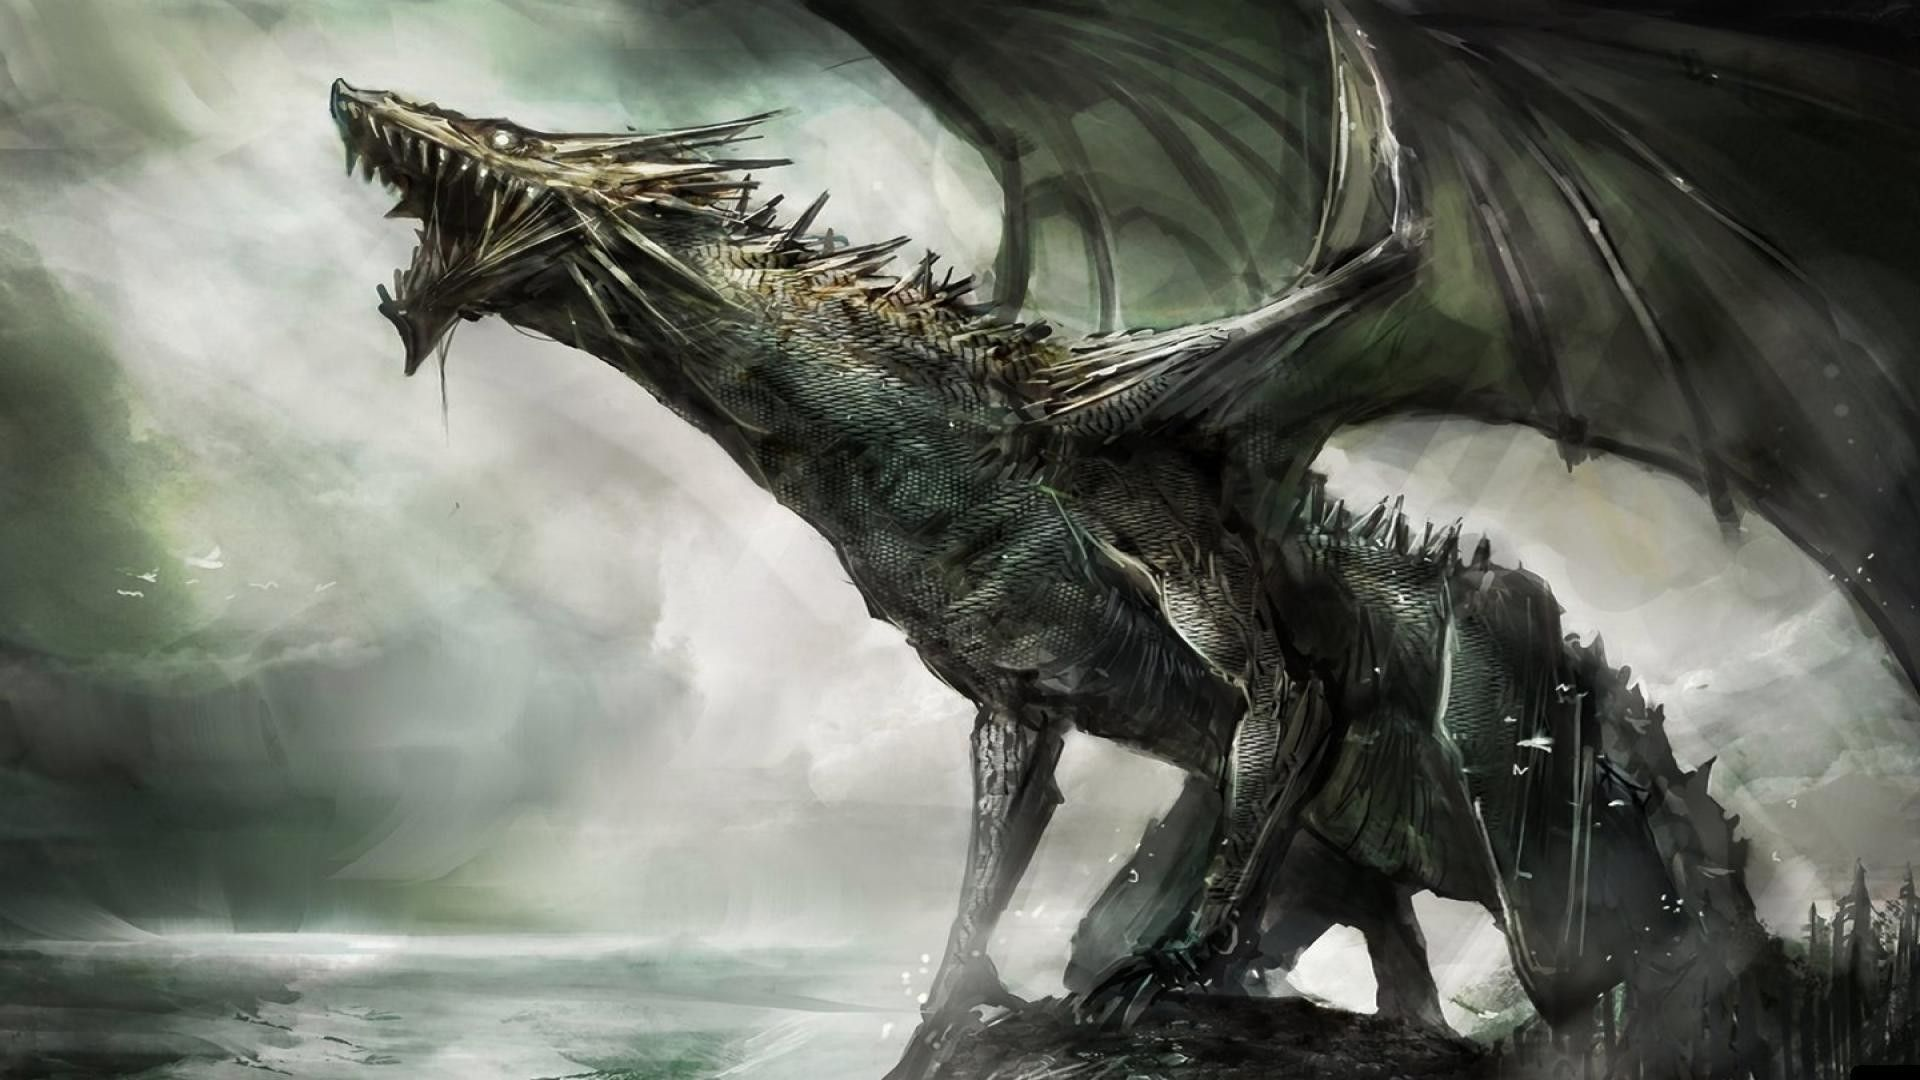 Dragon Wallpapers Widescreen Wallpaper 1920x1080 64